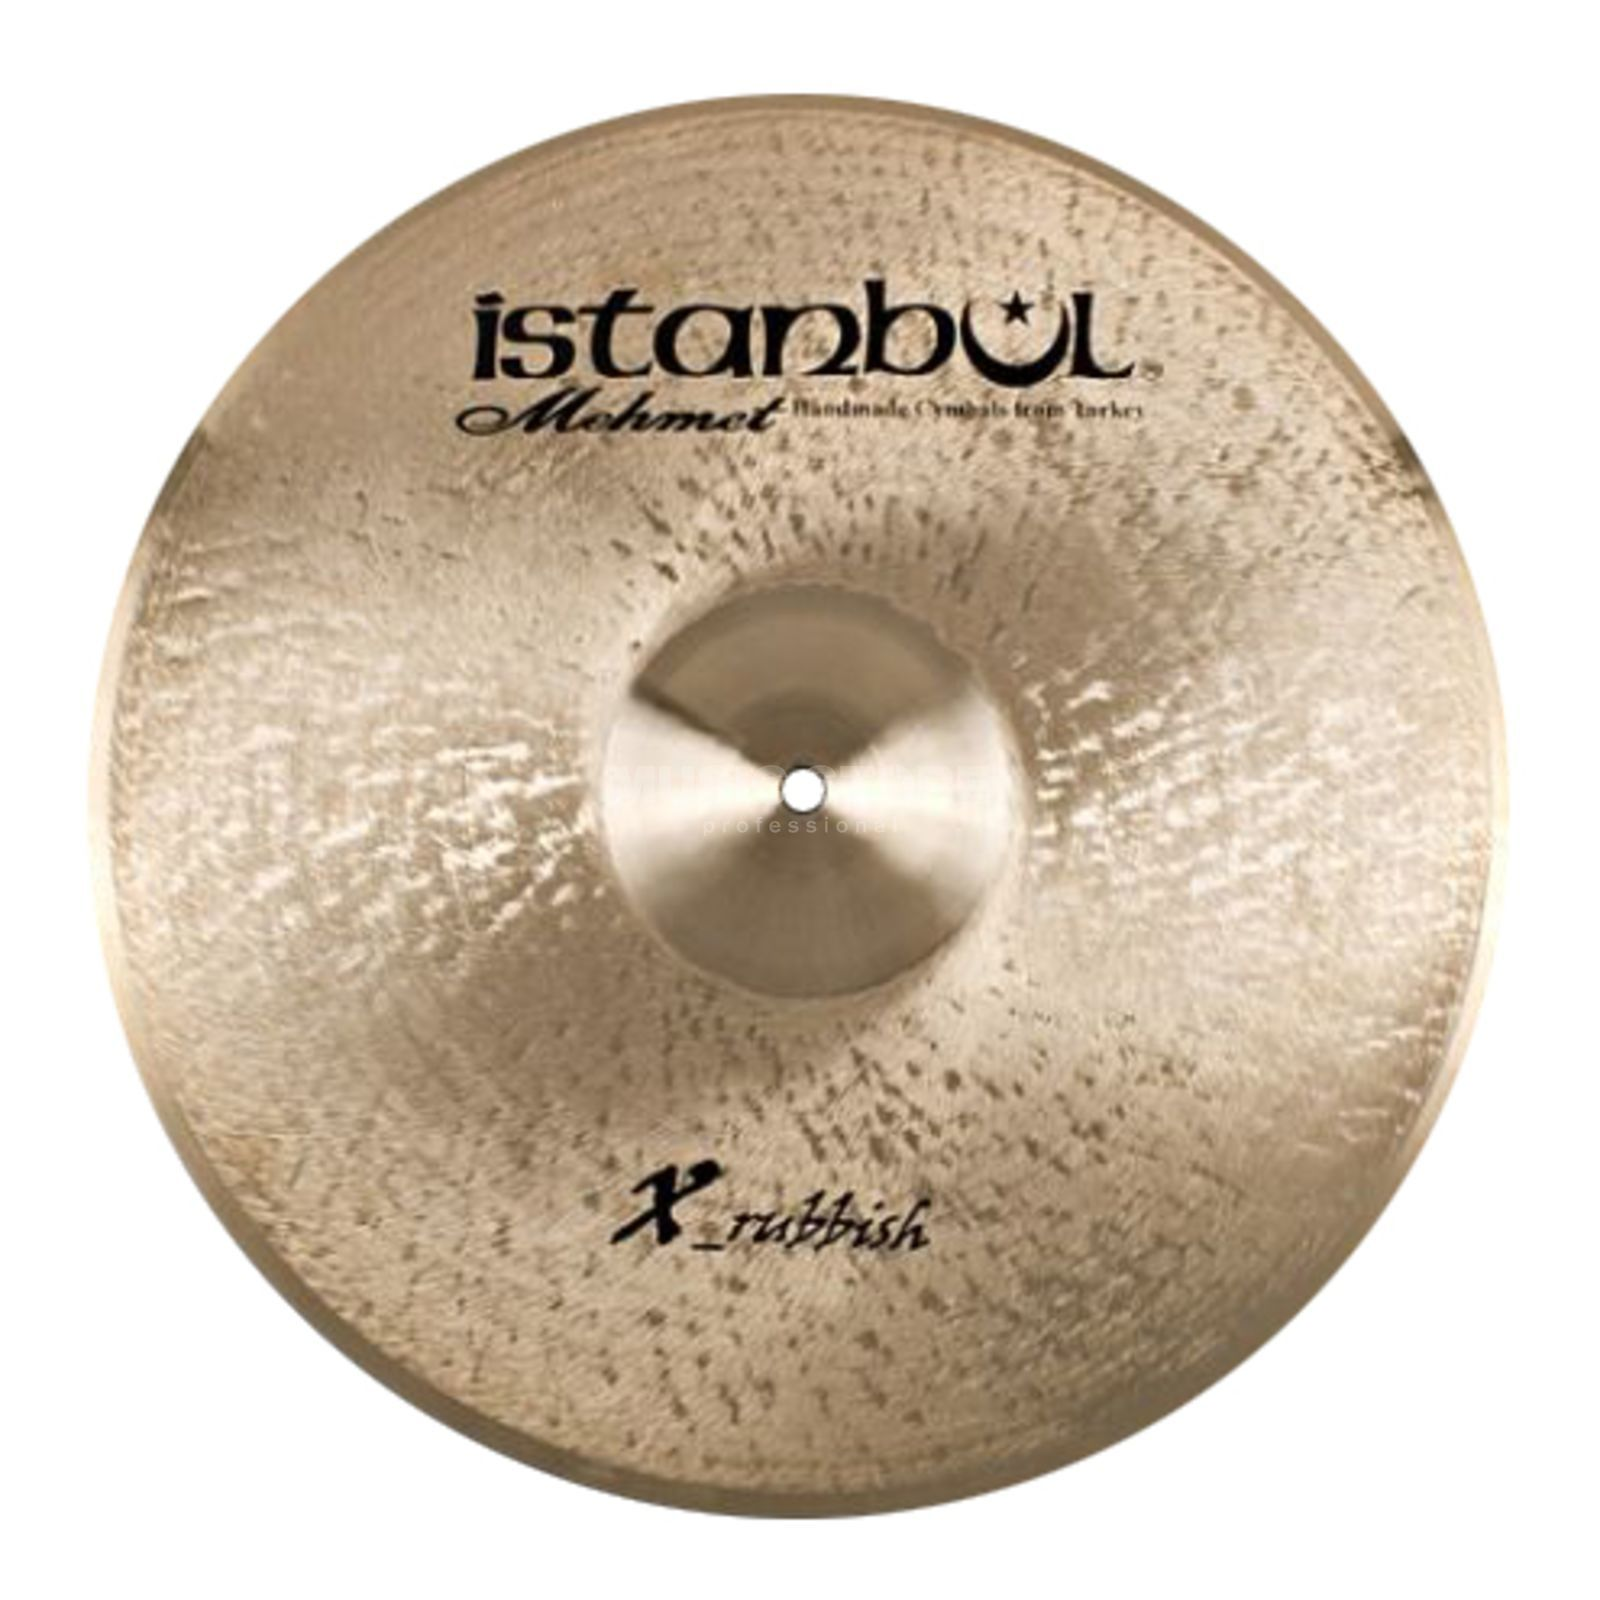 "Istanbul X-Rubbish Crash 12"", XR-C12, individual item Product Image"